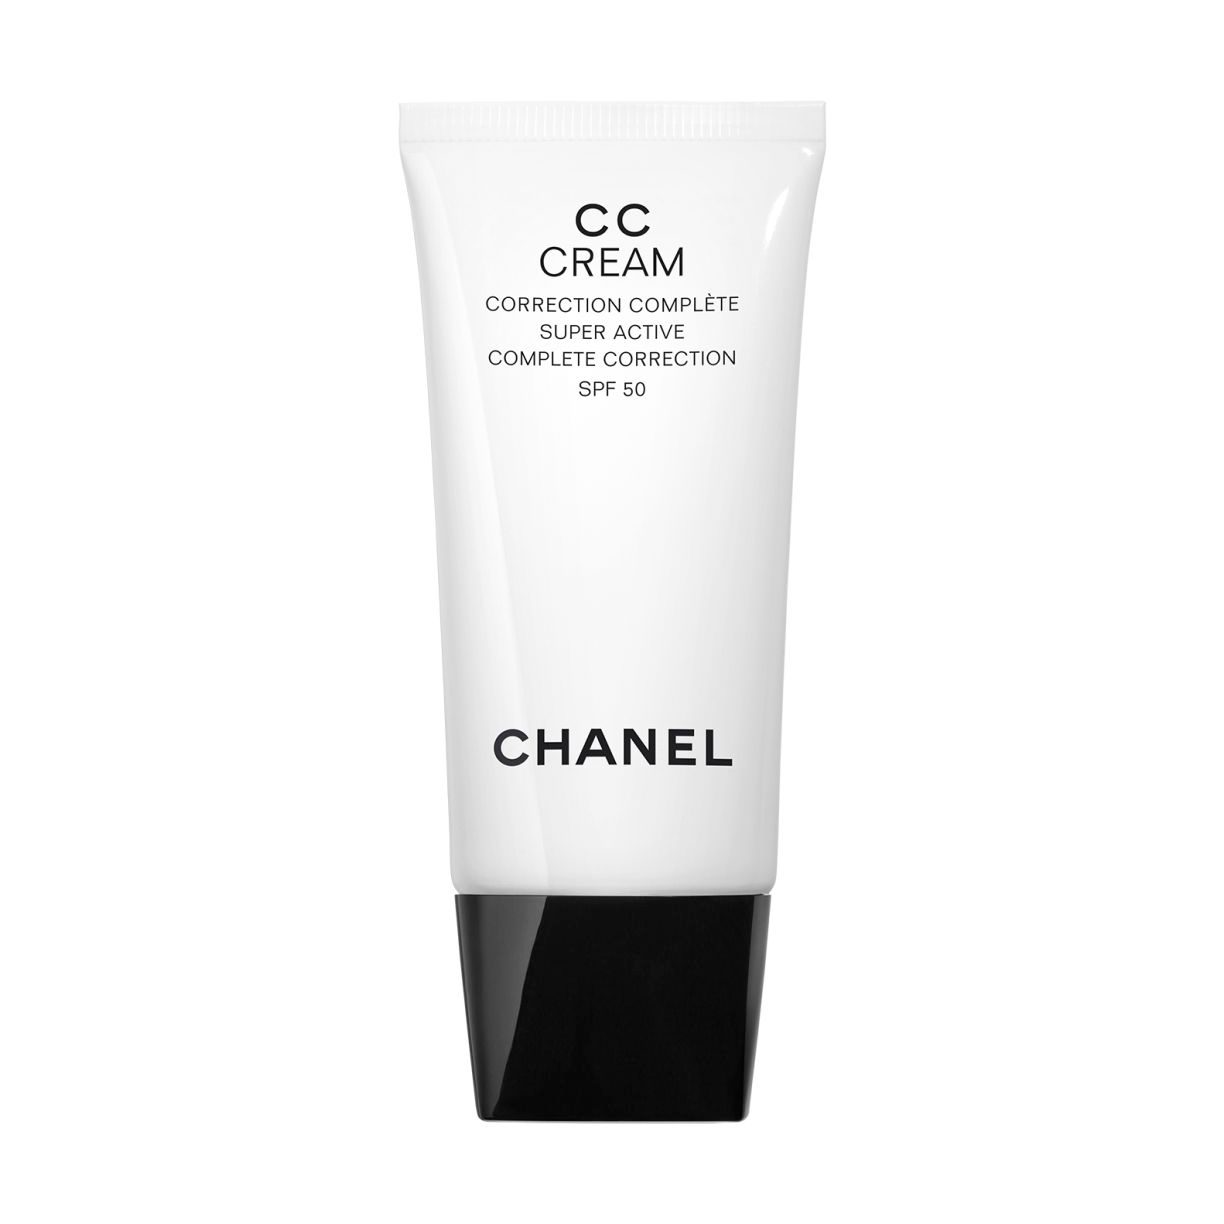 CC CREAM SUPER ACTIVE COMPLETE CORRECTION SPF 30